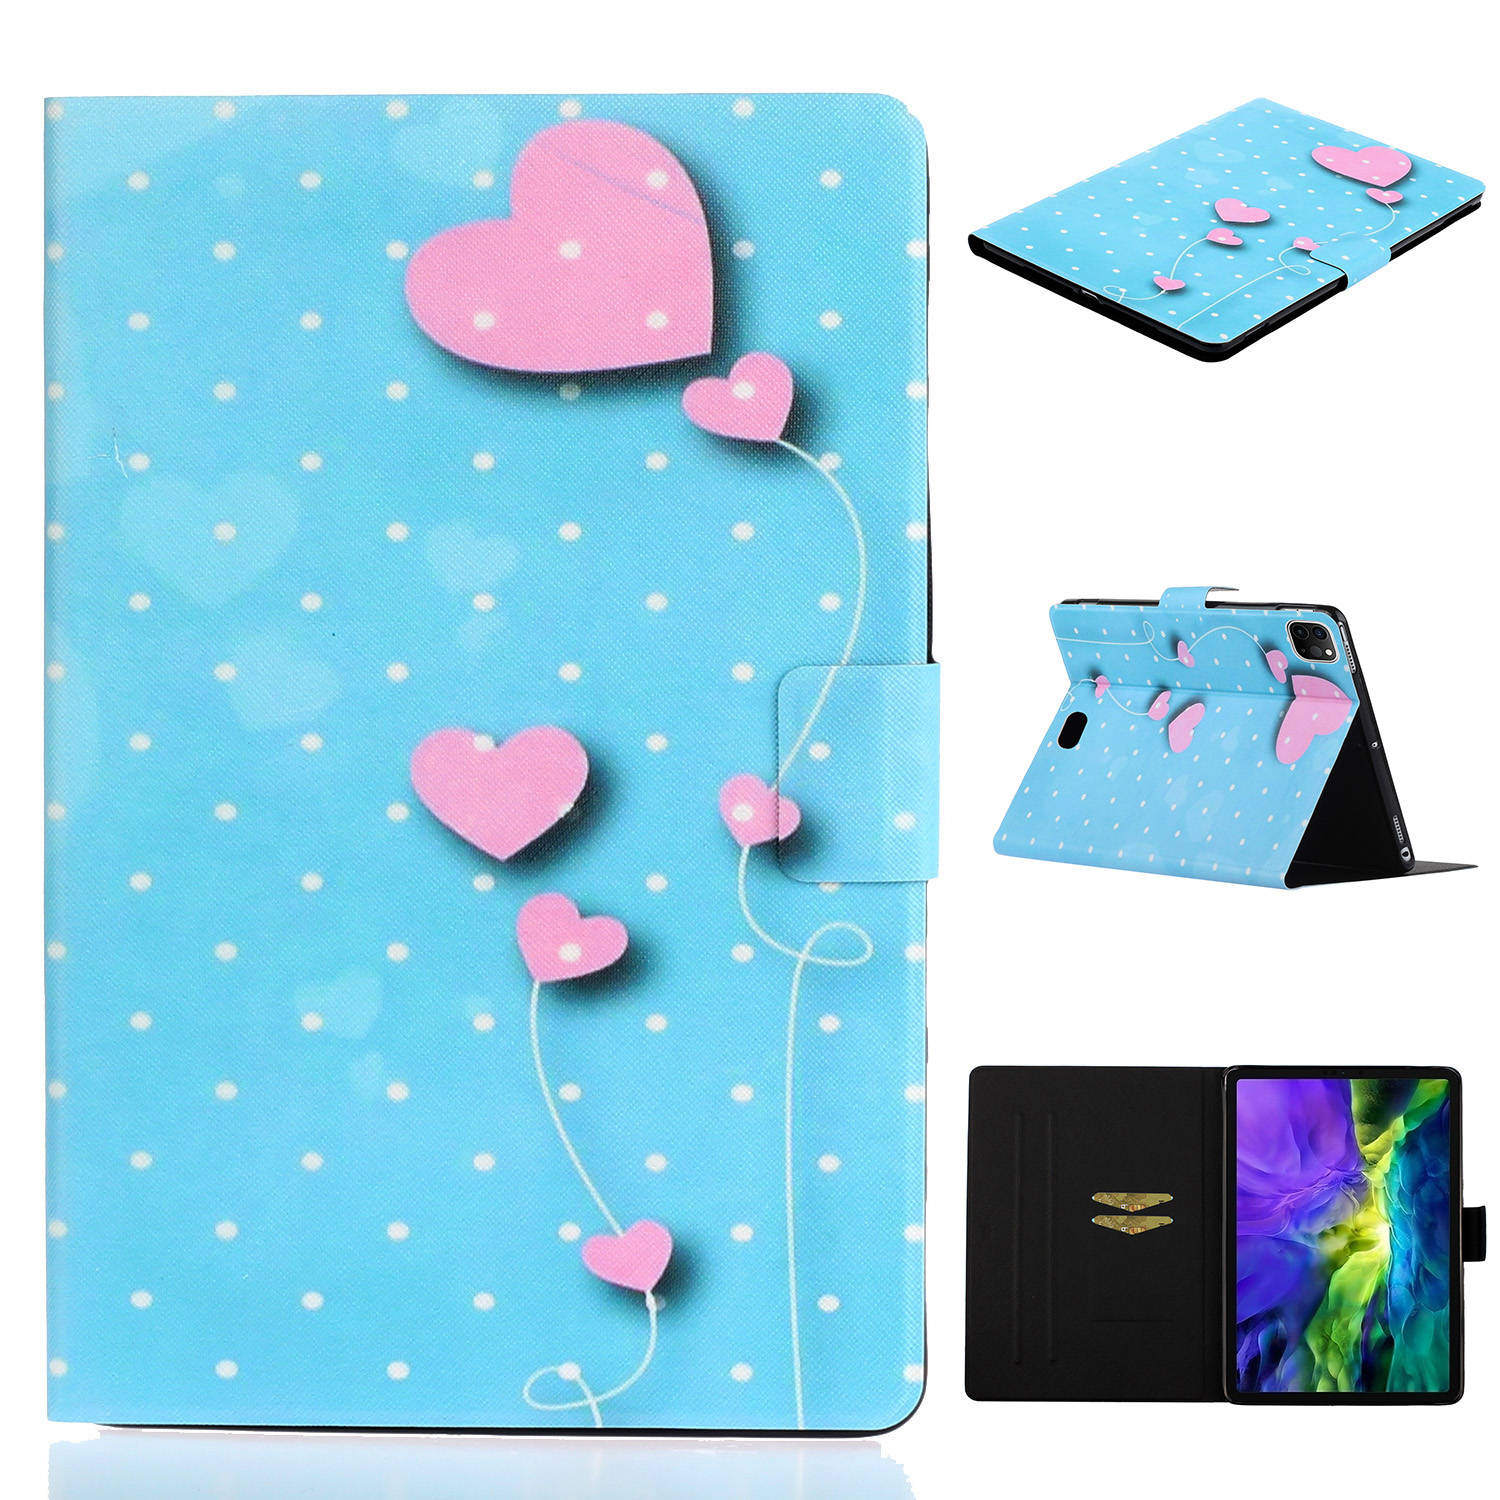 3 Blue For iPad Pro 11 inch 2020 Case Cheap PU Leather Painted Smart Folio Case for iPad